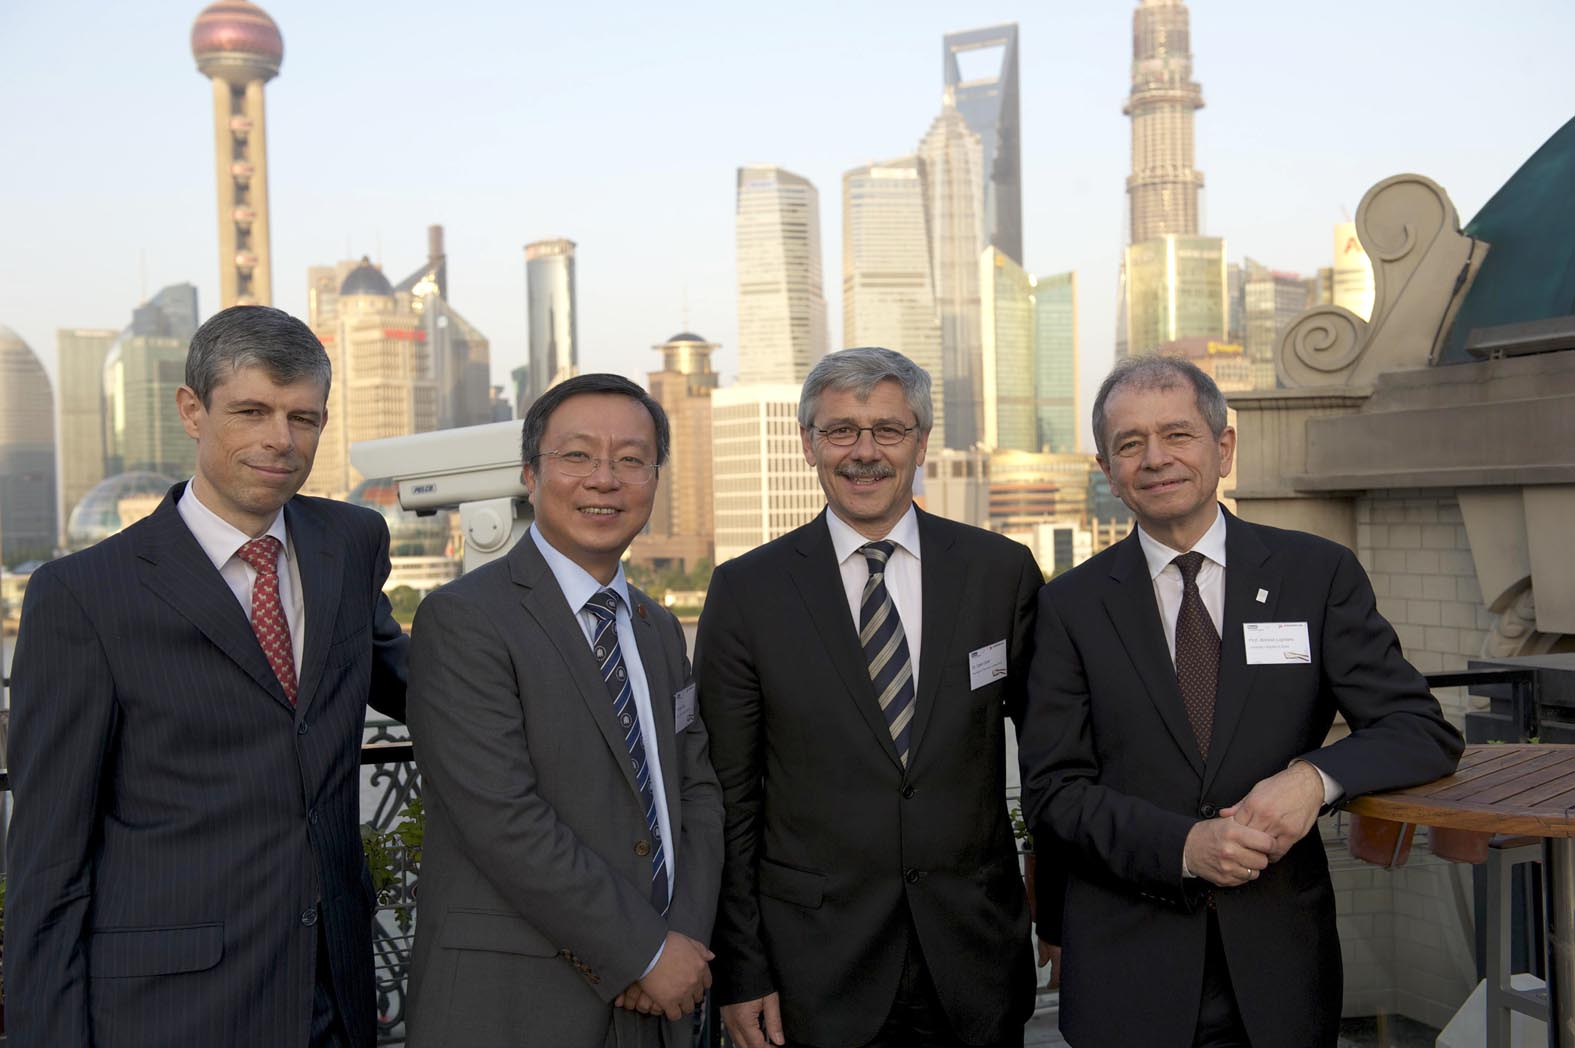 "From left to right: Mr. Heinrich Schellenberg, Mr. Ren Youqun, (Vice-President East China Normal University), Mr. Carlo Conti, Mr. Antonio Loprieno                                   Normal     0                     false     false     false         EN-US     JA     X-NONE                                                                                                                                                                                                                                                                                                                                                                                                                                                                                                                                                                                                                                                                                                                    /* Style Definitions */ table.MsoNormalTable 	{mso-style-name:""Table Normal""; 	mso-tstyle-rowband-size:0; 	mso-tstyle-colband-size:0; 	mso-style-noshow:yes; 	mso-style-priority:99; 	mso-style-parent:""""; 	mso-padding-alt:0cm 5.4pt 0cm 5.4pt; 	mso-para-margin:0cm; 	mso-para-margin-bottom:.0001pt; 	mso-pagination:widow-orphan; 	font-size:12.0pt; 	font-family:Cambria; 	mso-ascii-font-family:Cambria; 	mso-ascii-theme-font:minor-latin; 	mso-hansi-font-family:Cambria; 	mso-hansi-theme-font:minor-latin;}"